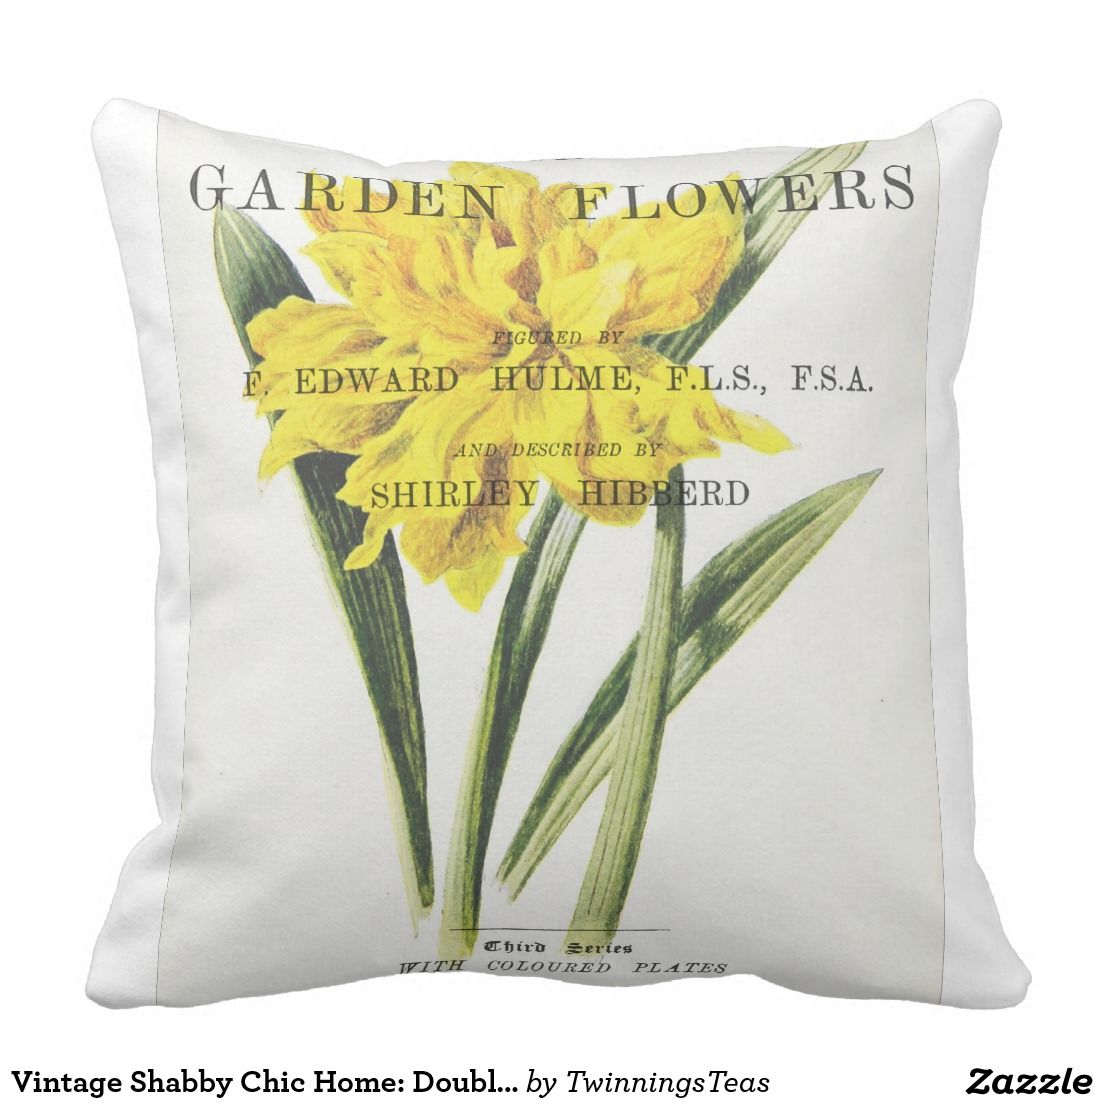 Vintage Shabby Chic Home: Double Trumpet Daffodil Pillows